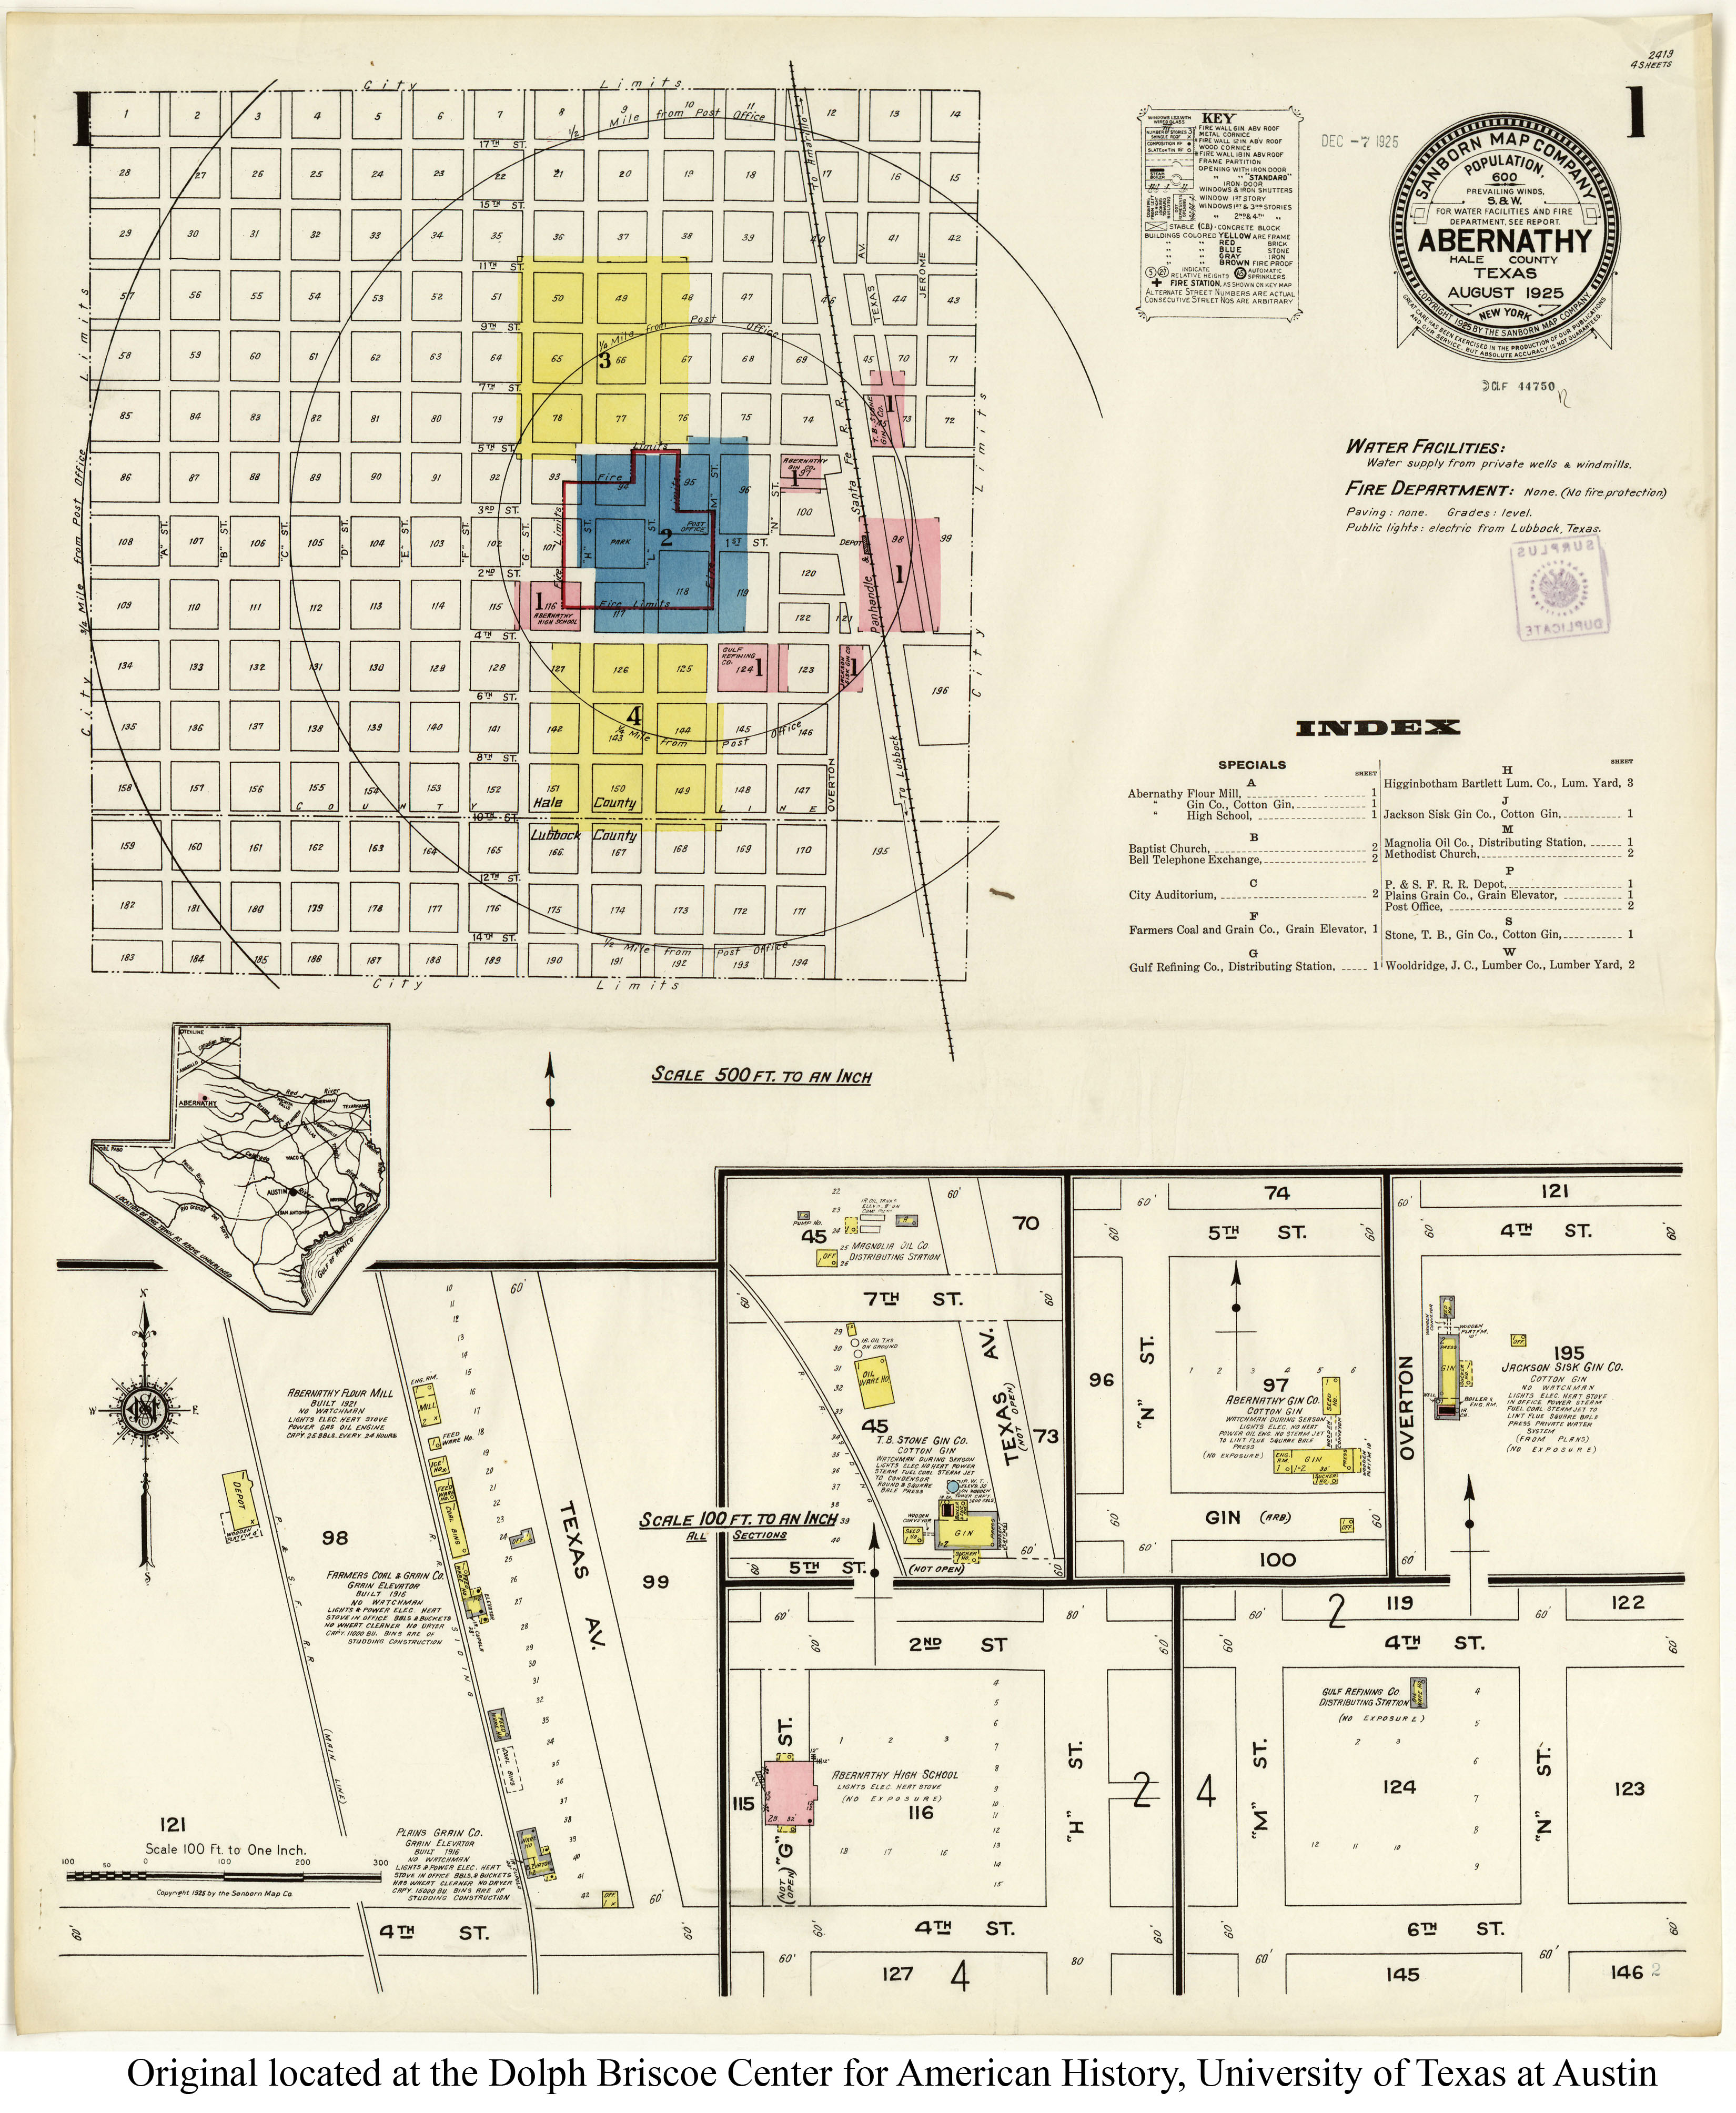 Sanborn Maps of Texas - Perry-Castañeda Map Collection - UT ... on 1909 school maps, historical maps, metropolitan legislative maps, sanborn maps nj, sanborn maps online, library of congress sanborn maps, digital sanborn maps, new google maps, south carolina sanborn insurance maps, sanborn insurance maps binghamton ny, old insurance maps, sanborn maps nc 1905, sanborn maps texas, yale campus building maps, best font for maps, sanborn typography maps, virginia city nevada sanborn maps,